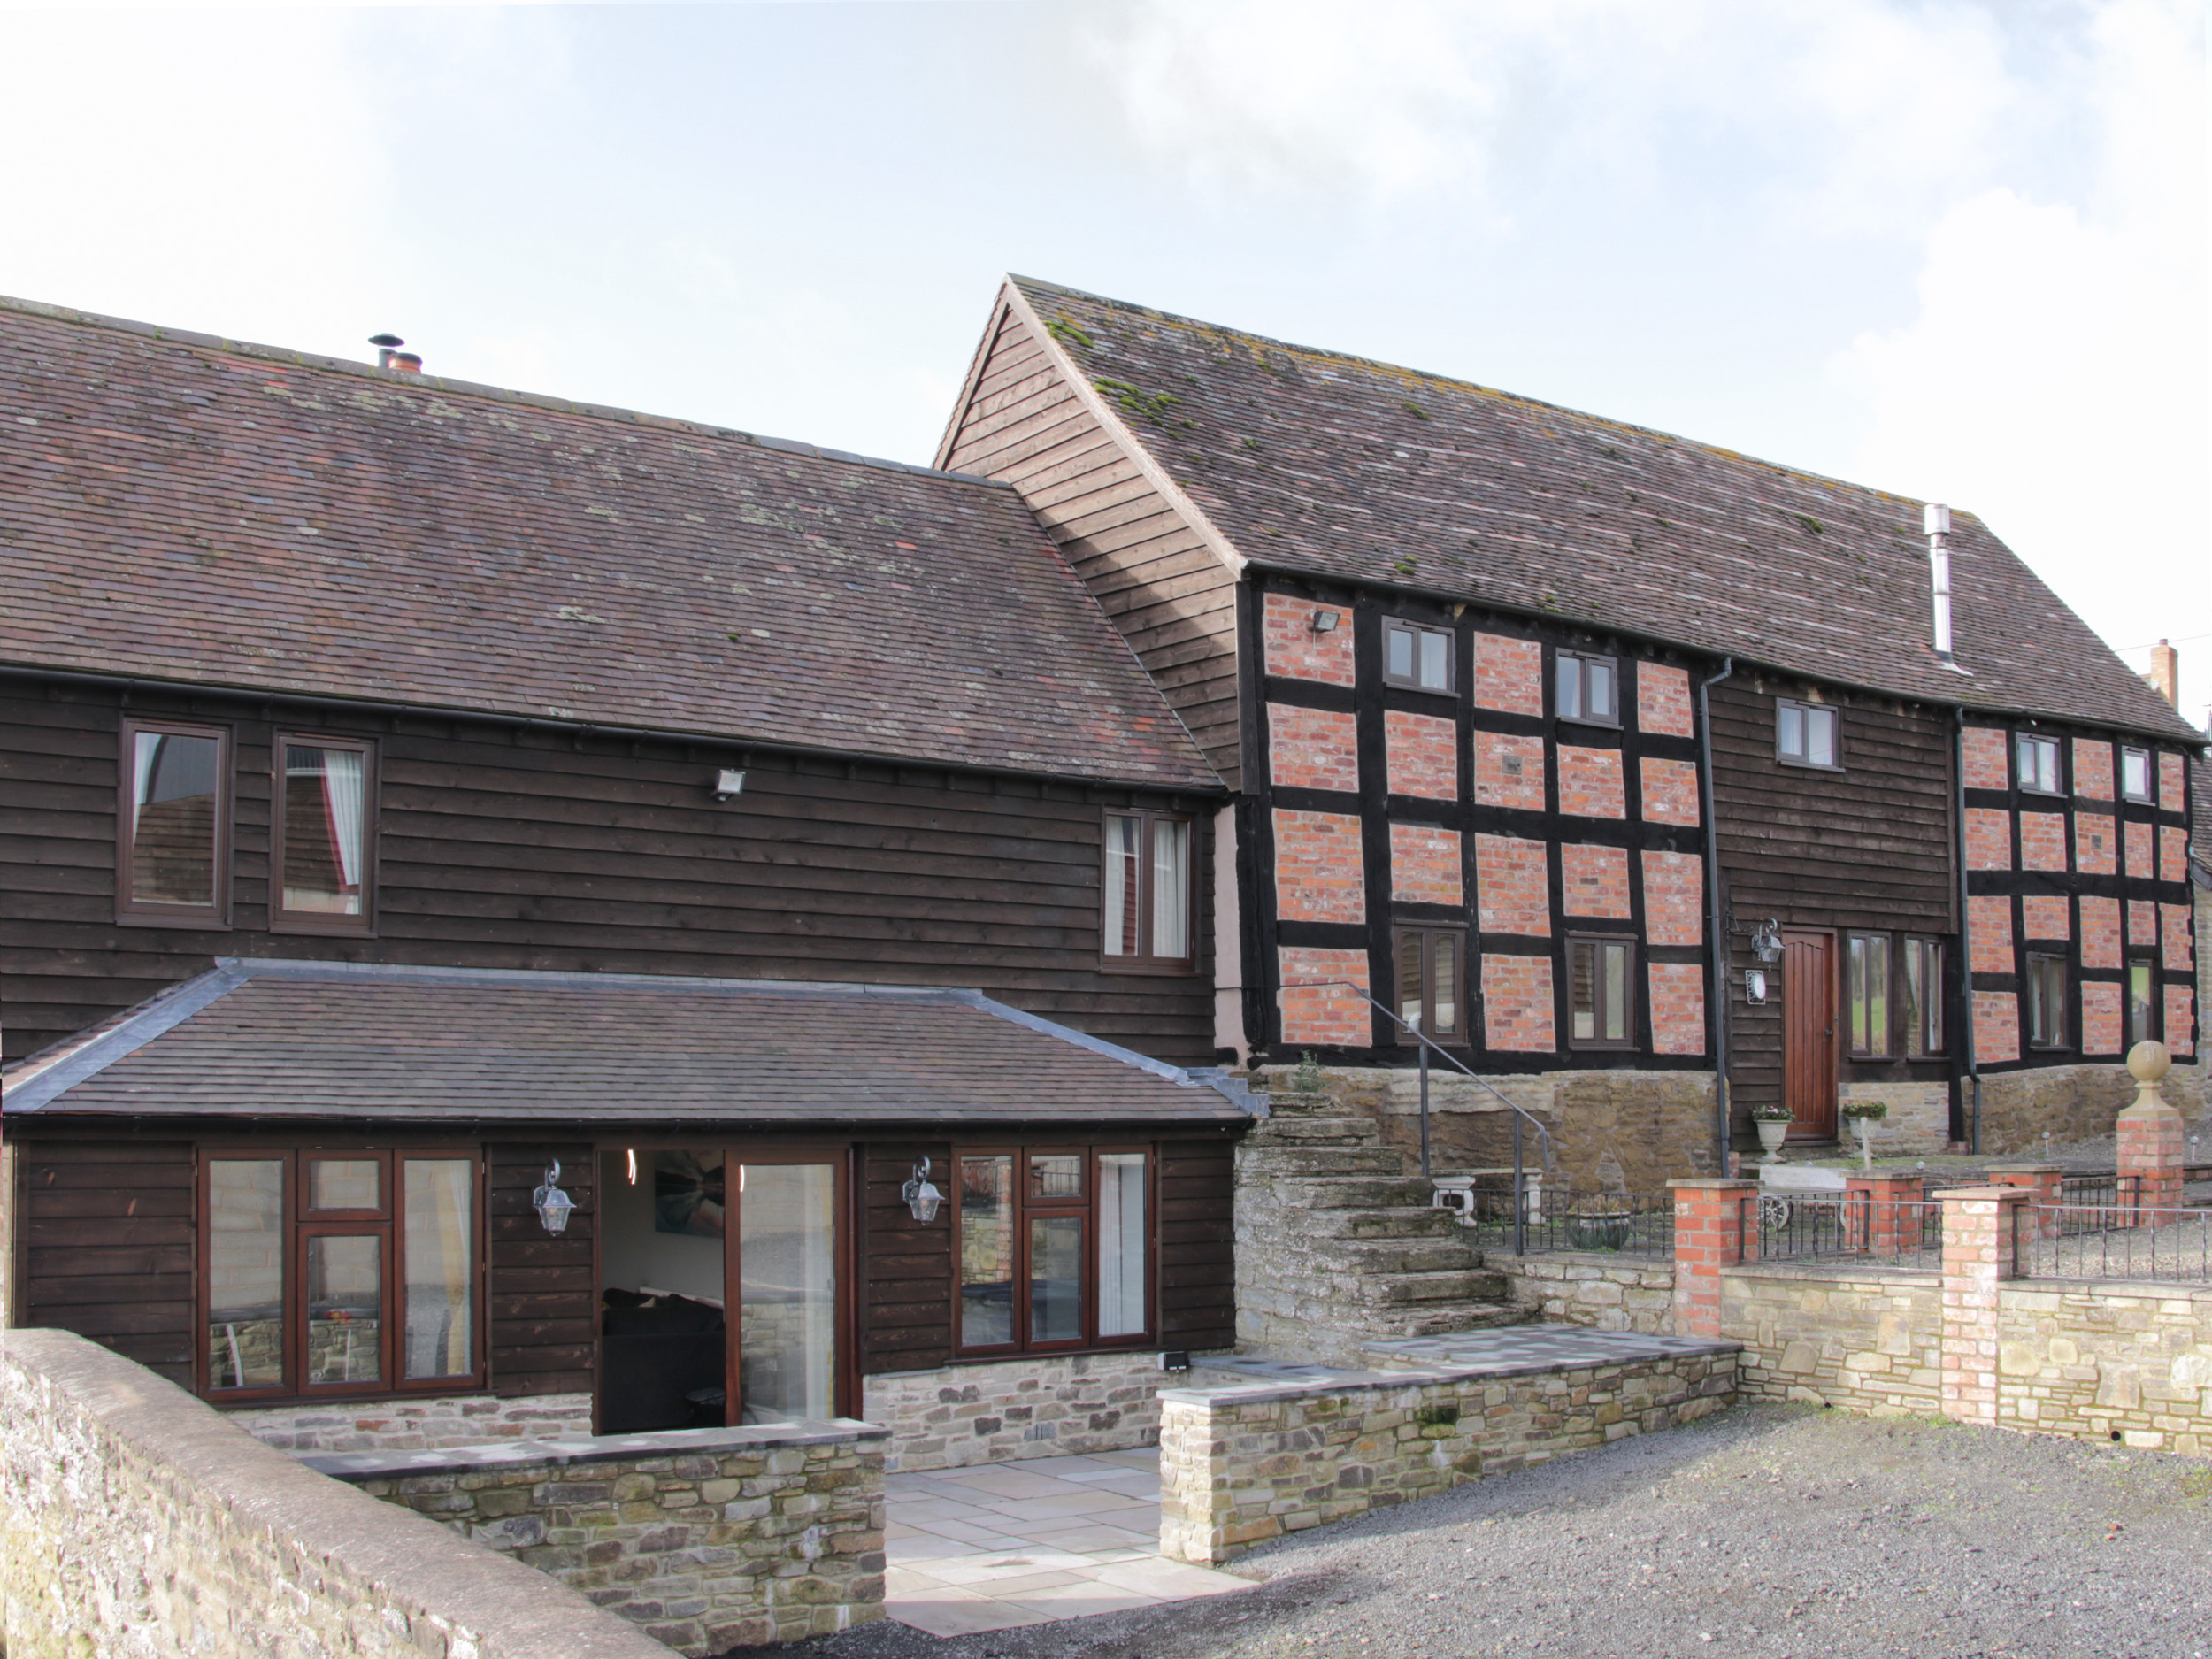 1 bedroom Cottage for rent in Craven Arms